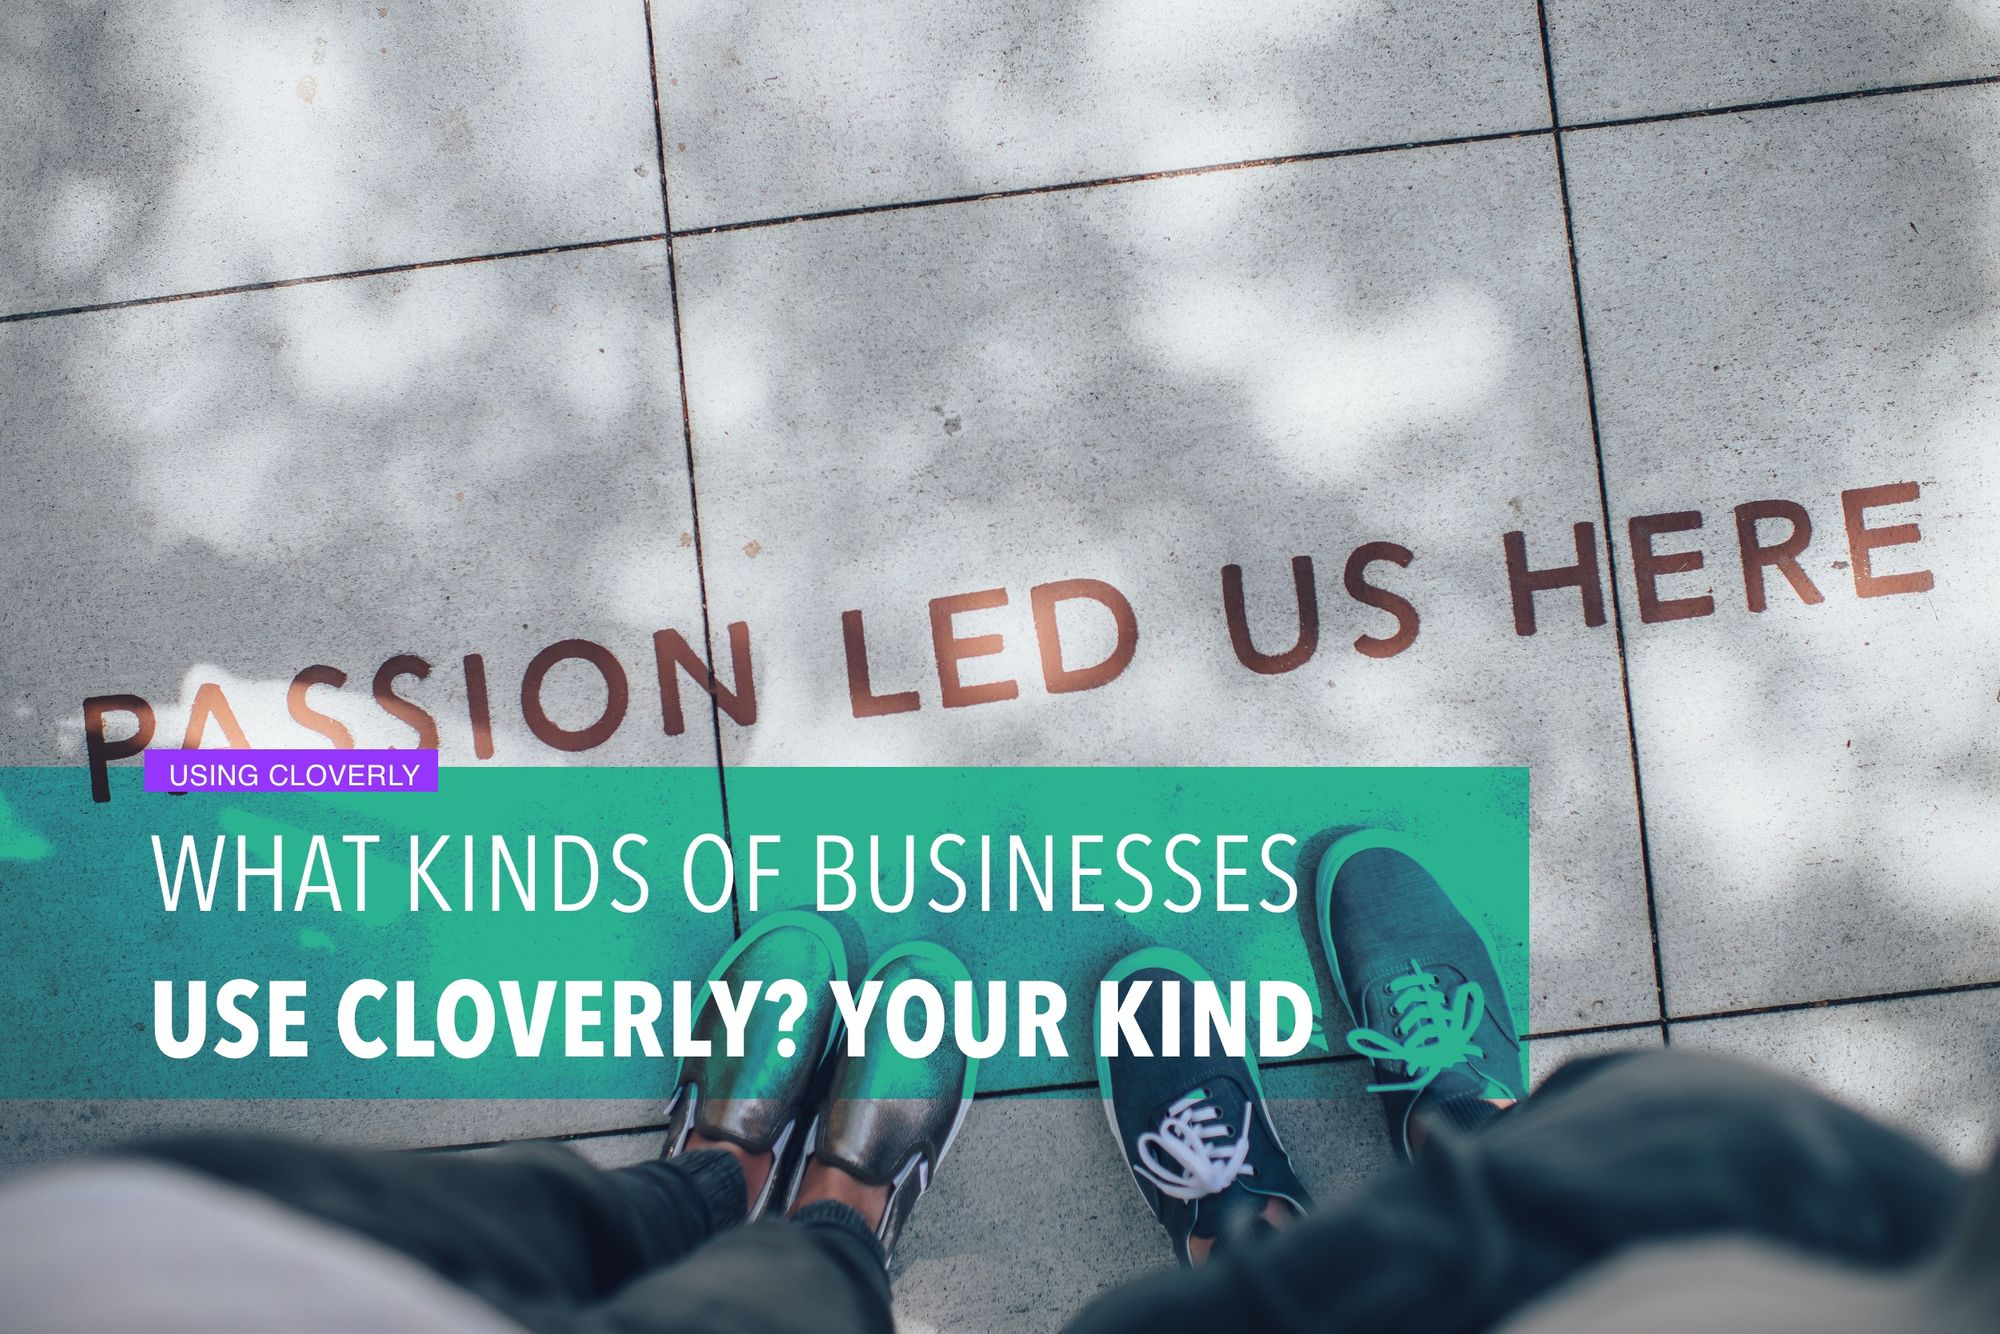 What kinds of businesses use Cloverly? Your kind